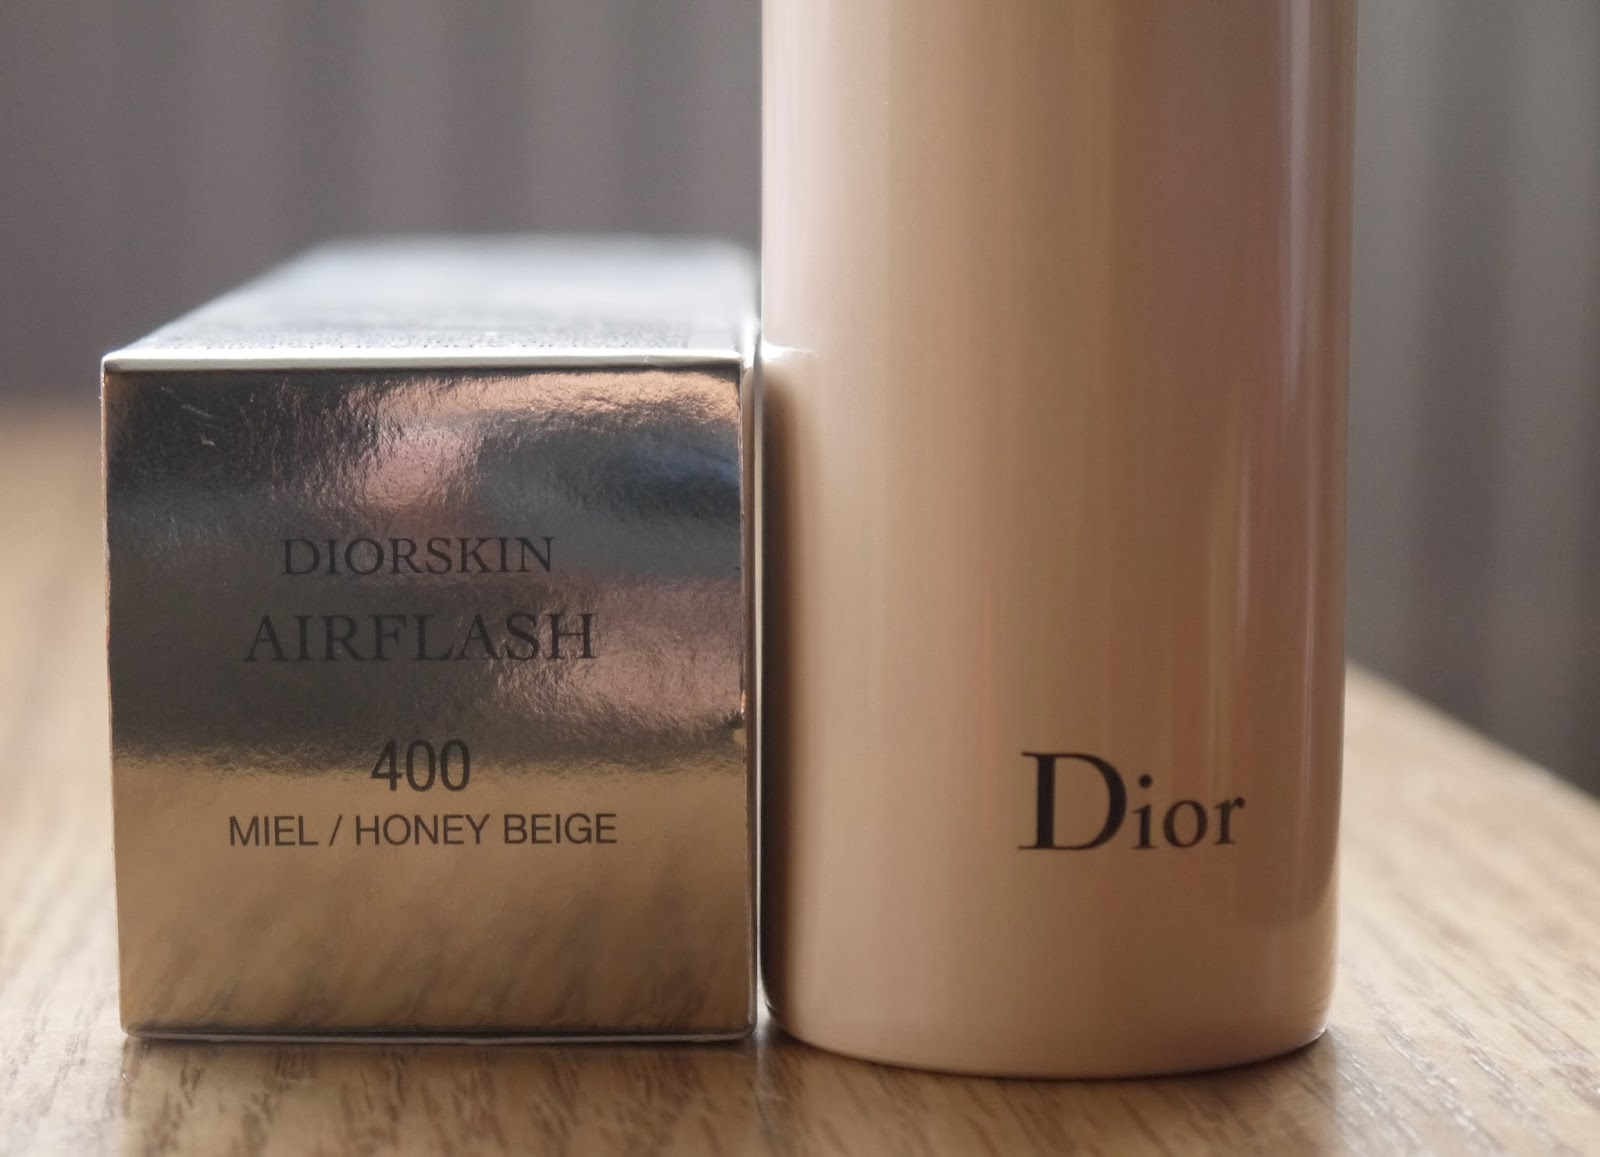 Diorskin Airflash Foundation